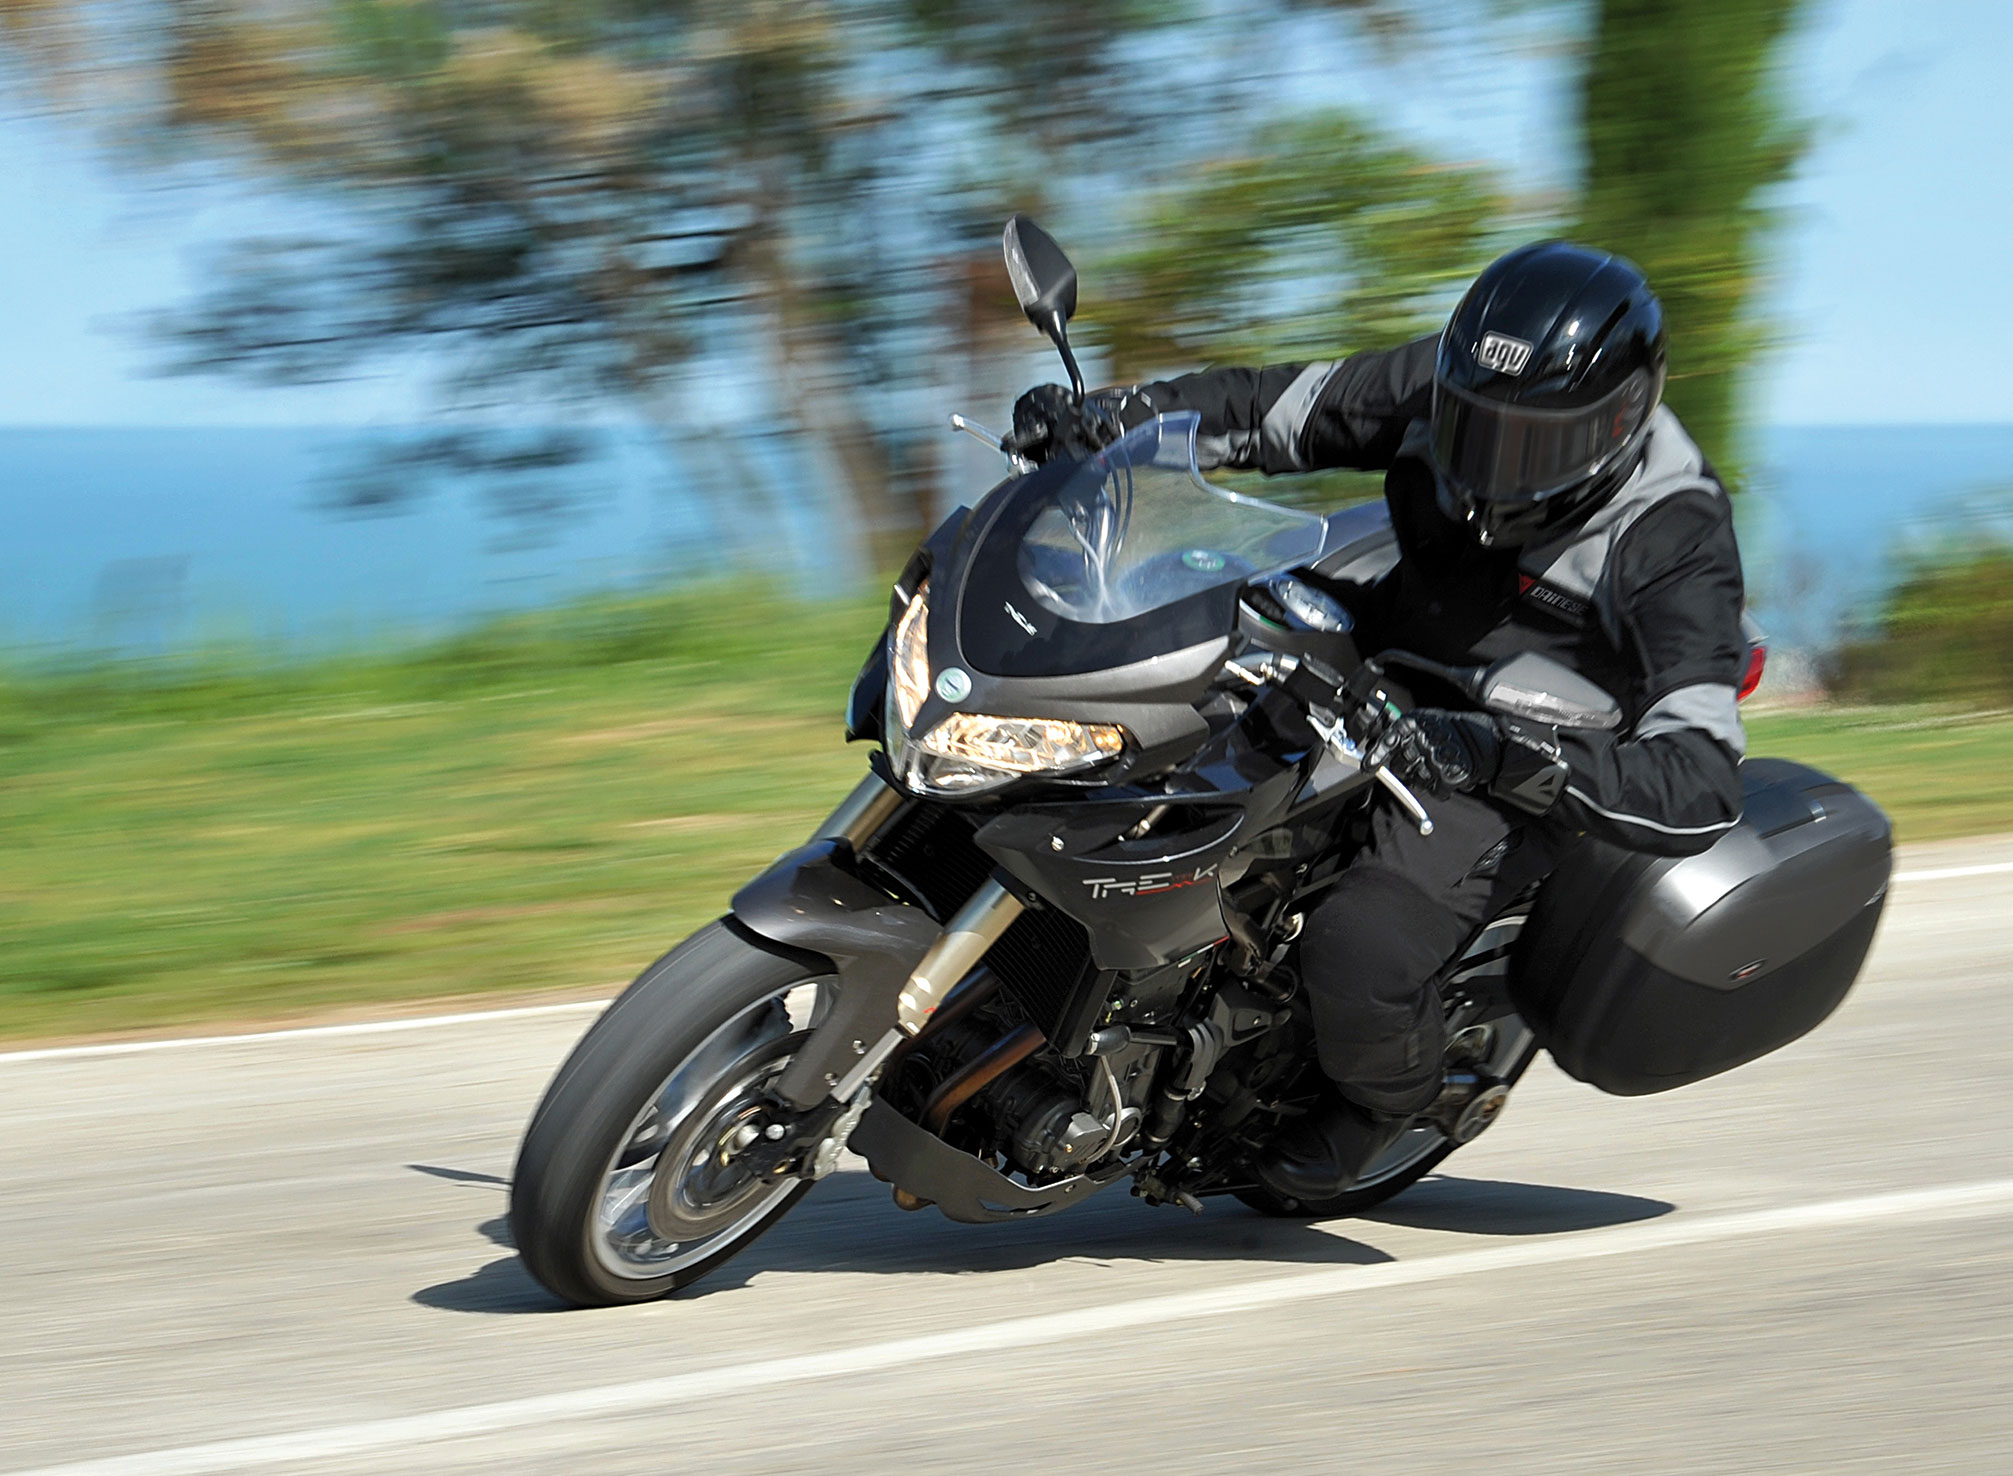 2013 Benelli X 125 150 Review – Wonderful Image Gallery